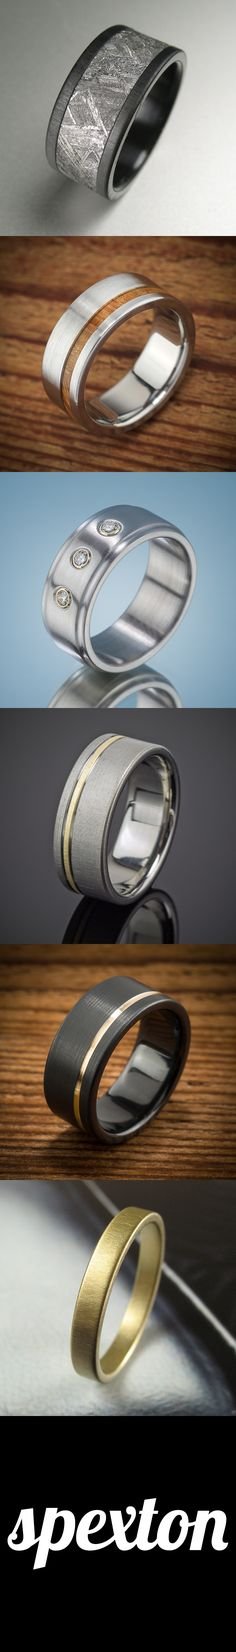 Do you want a mass-produced wedding band from China, or do you want a handmade ring, custom-cut to your design specifications?    Spexton's rings are handmade in the USA from modern materials like Black Zirconium, Titanium, Steel, Meteorite, Rose Gold, Wood, and More.